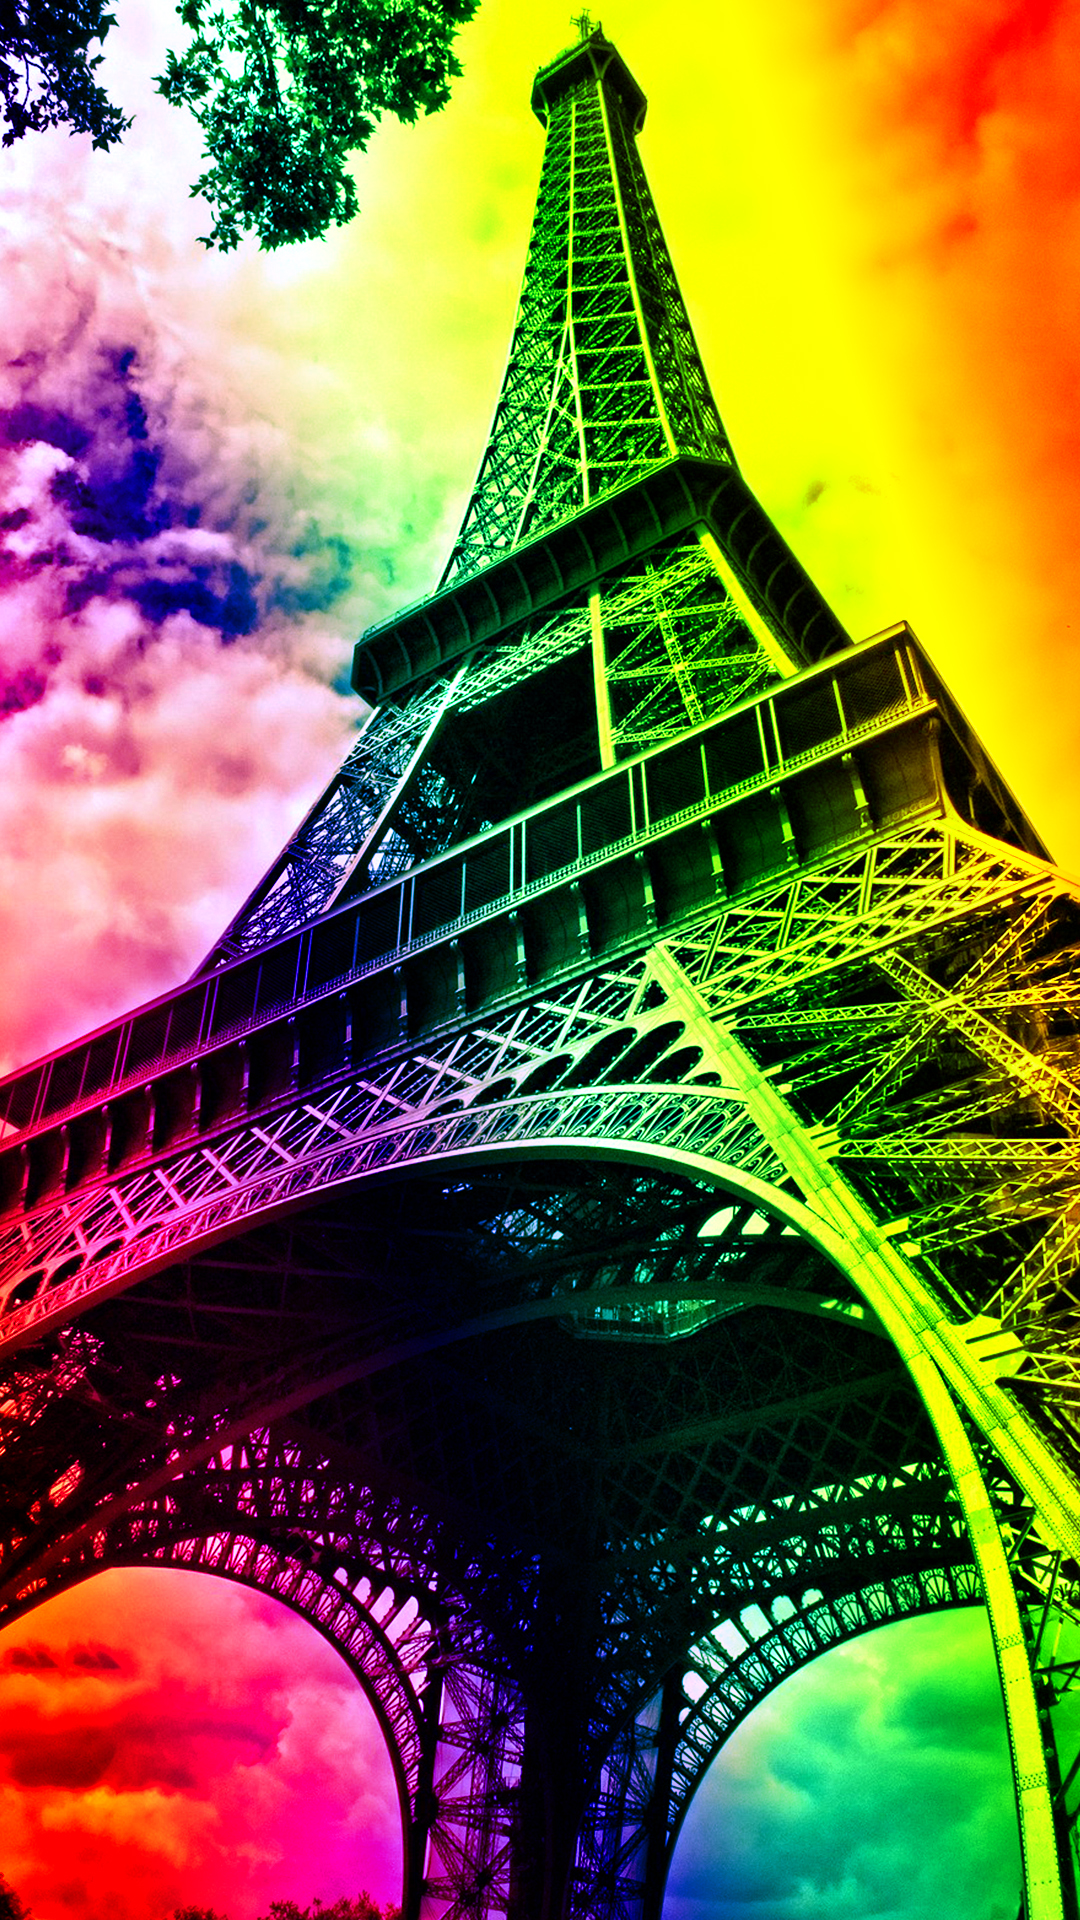 Burberry Iphone Wallpaper Eiffel Tower Hd Wallpaper For Your Mobile Phone